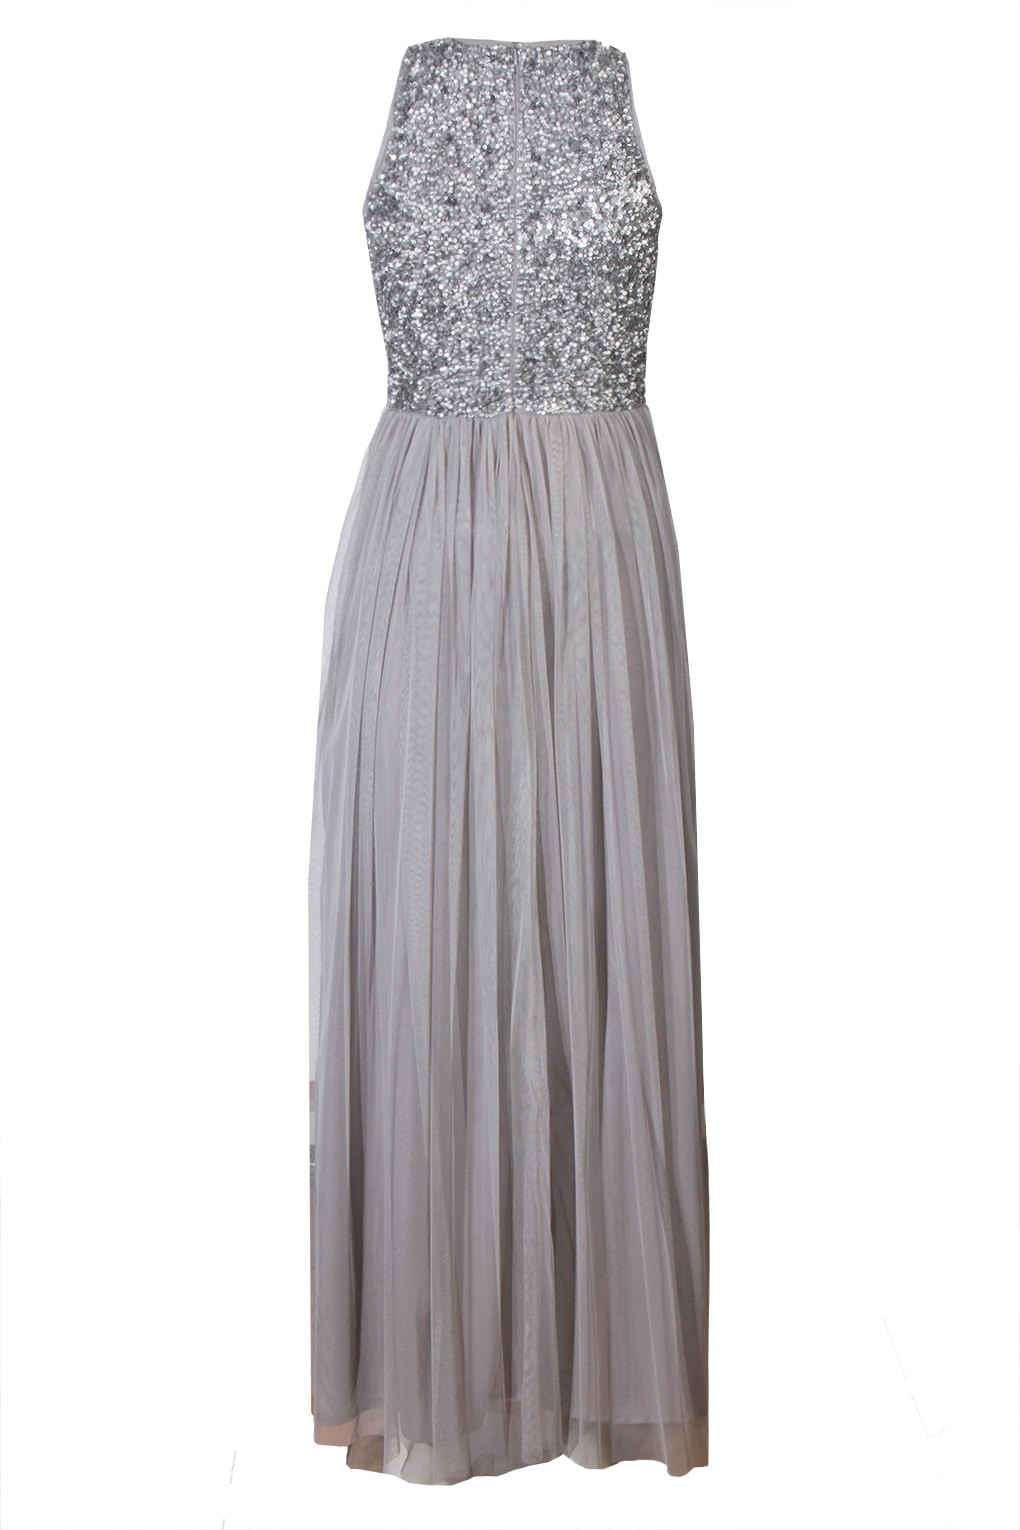 Lace Amp Beads Picasso Grey Embellished Maxi Dress Party